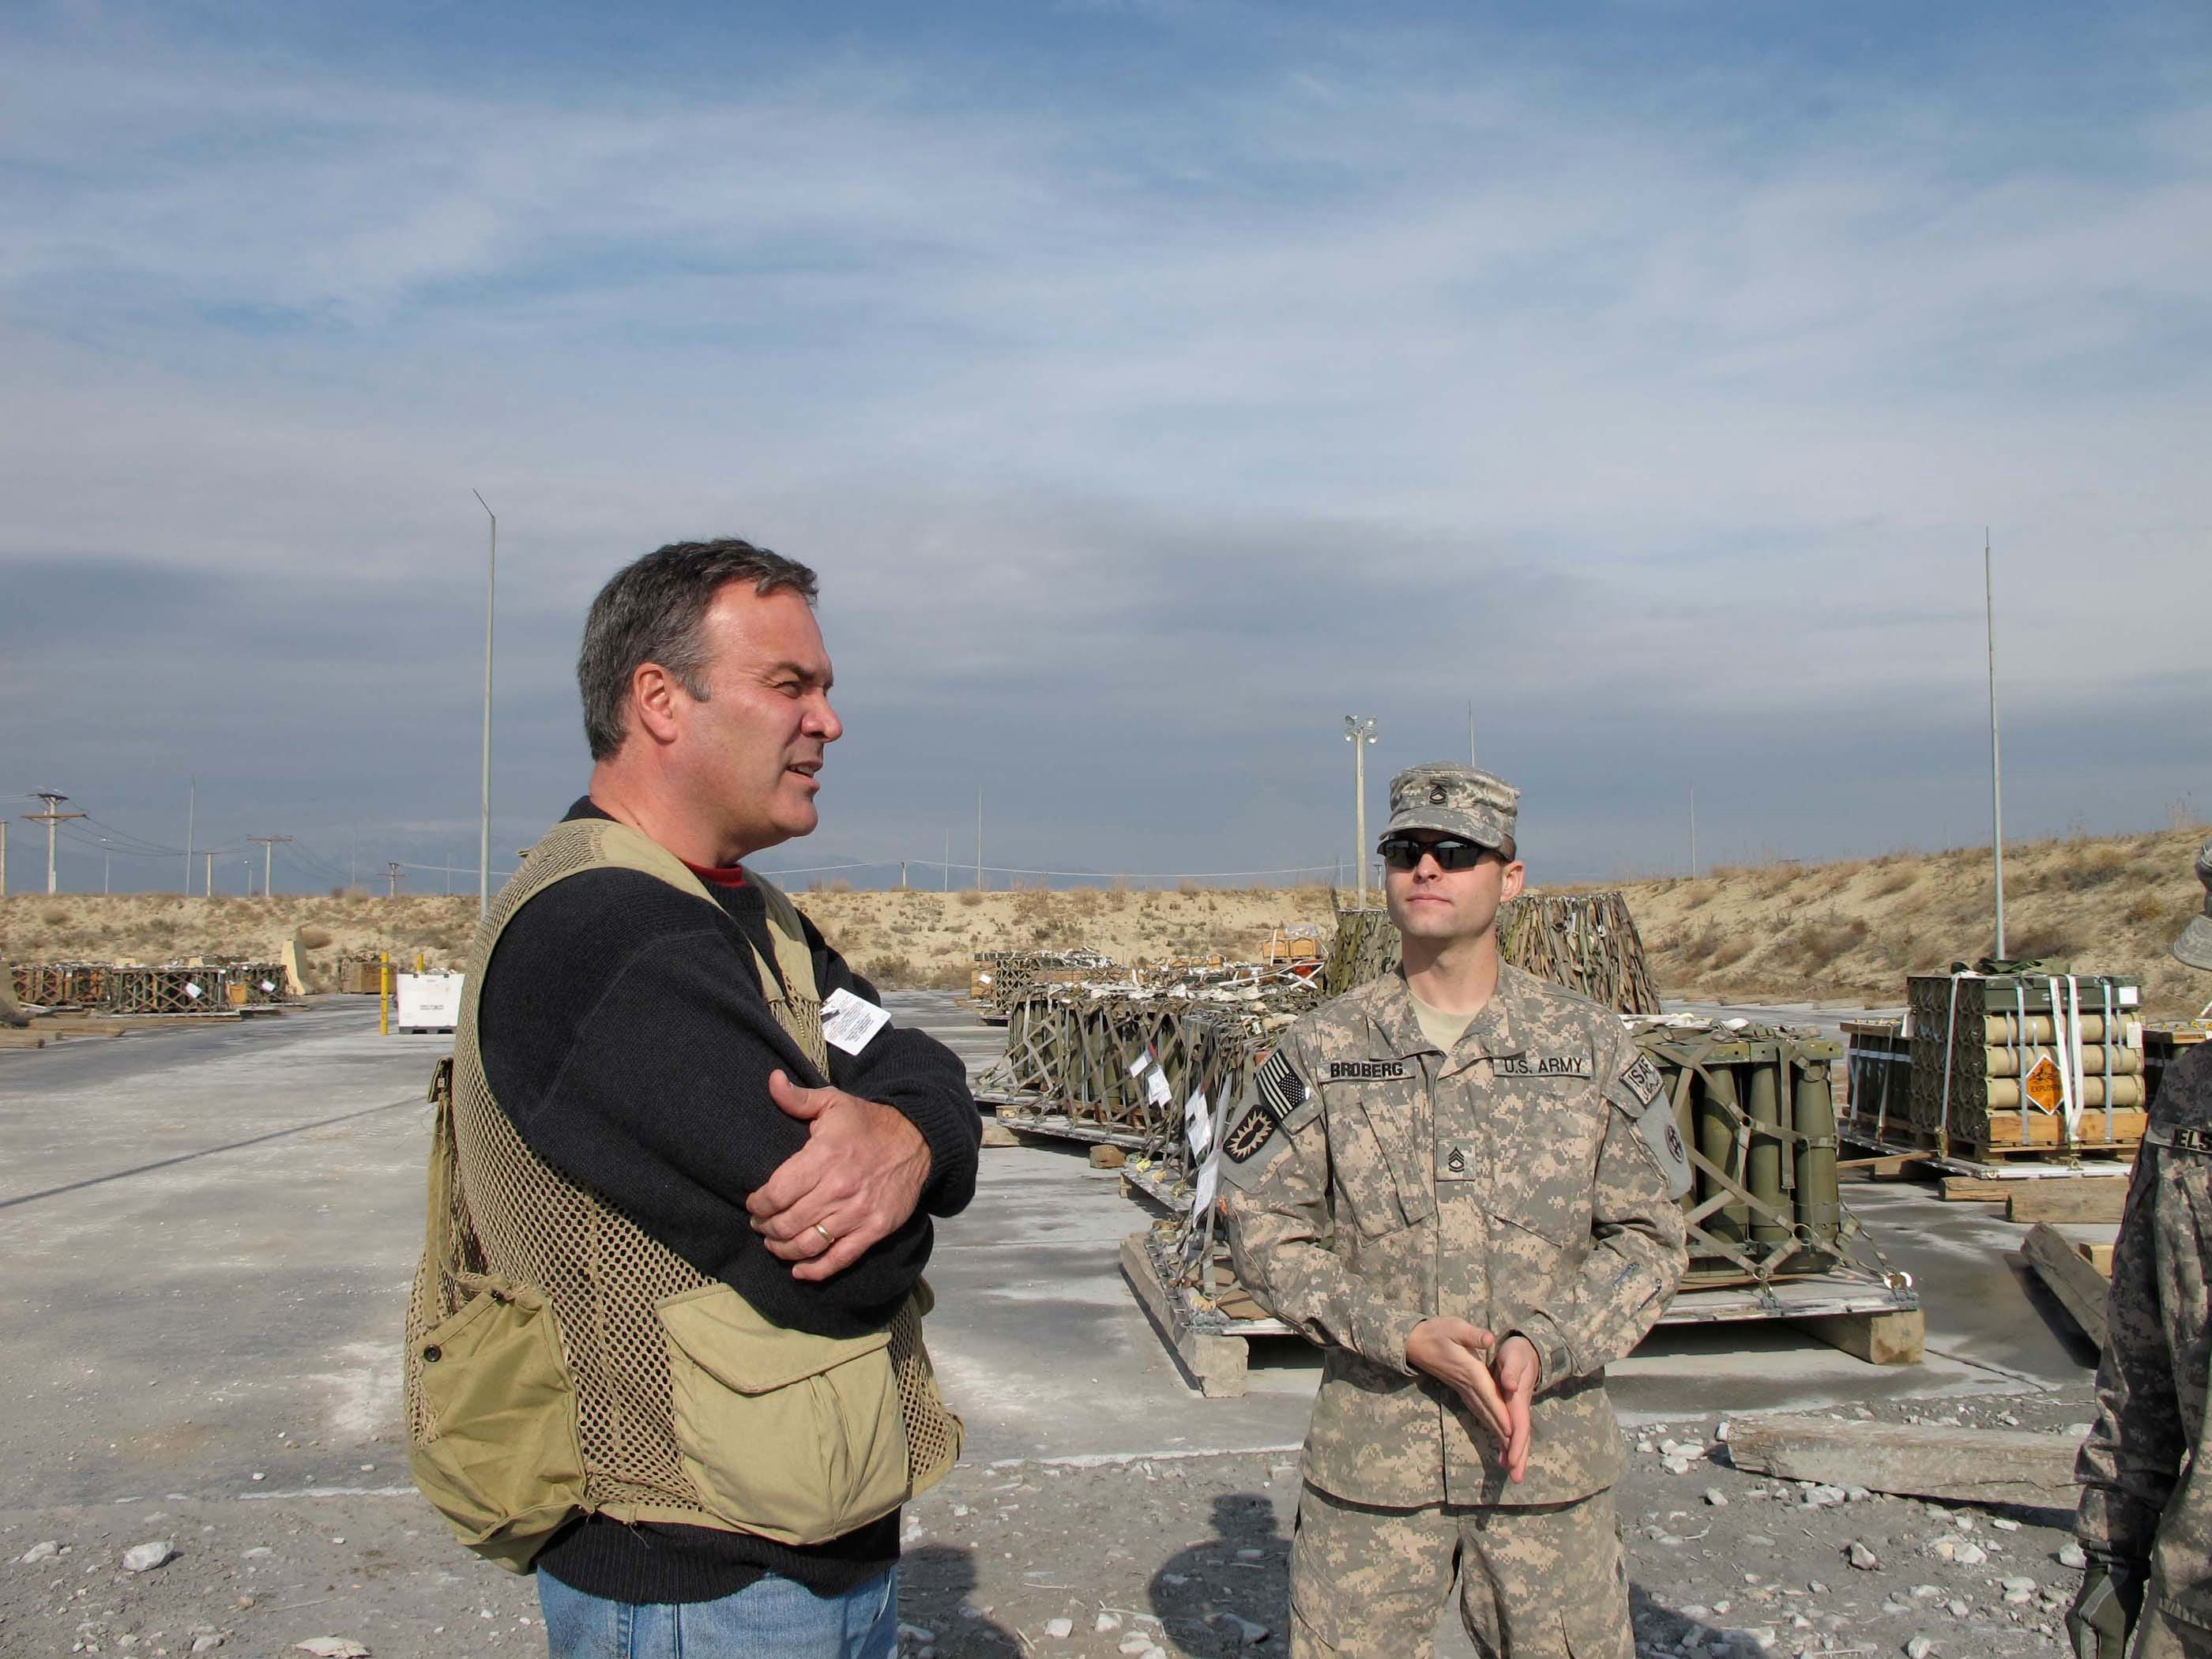 George Stanley interviews Sgt. 1st Class Carl Broberg at the Ammunition Supply Point at Bagram Airfield.